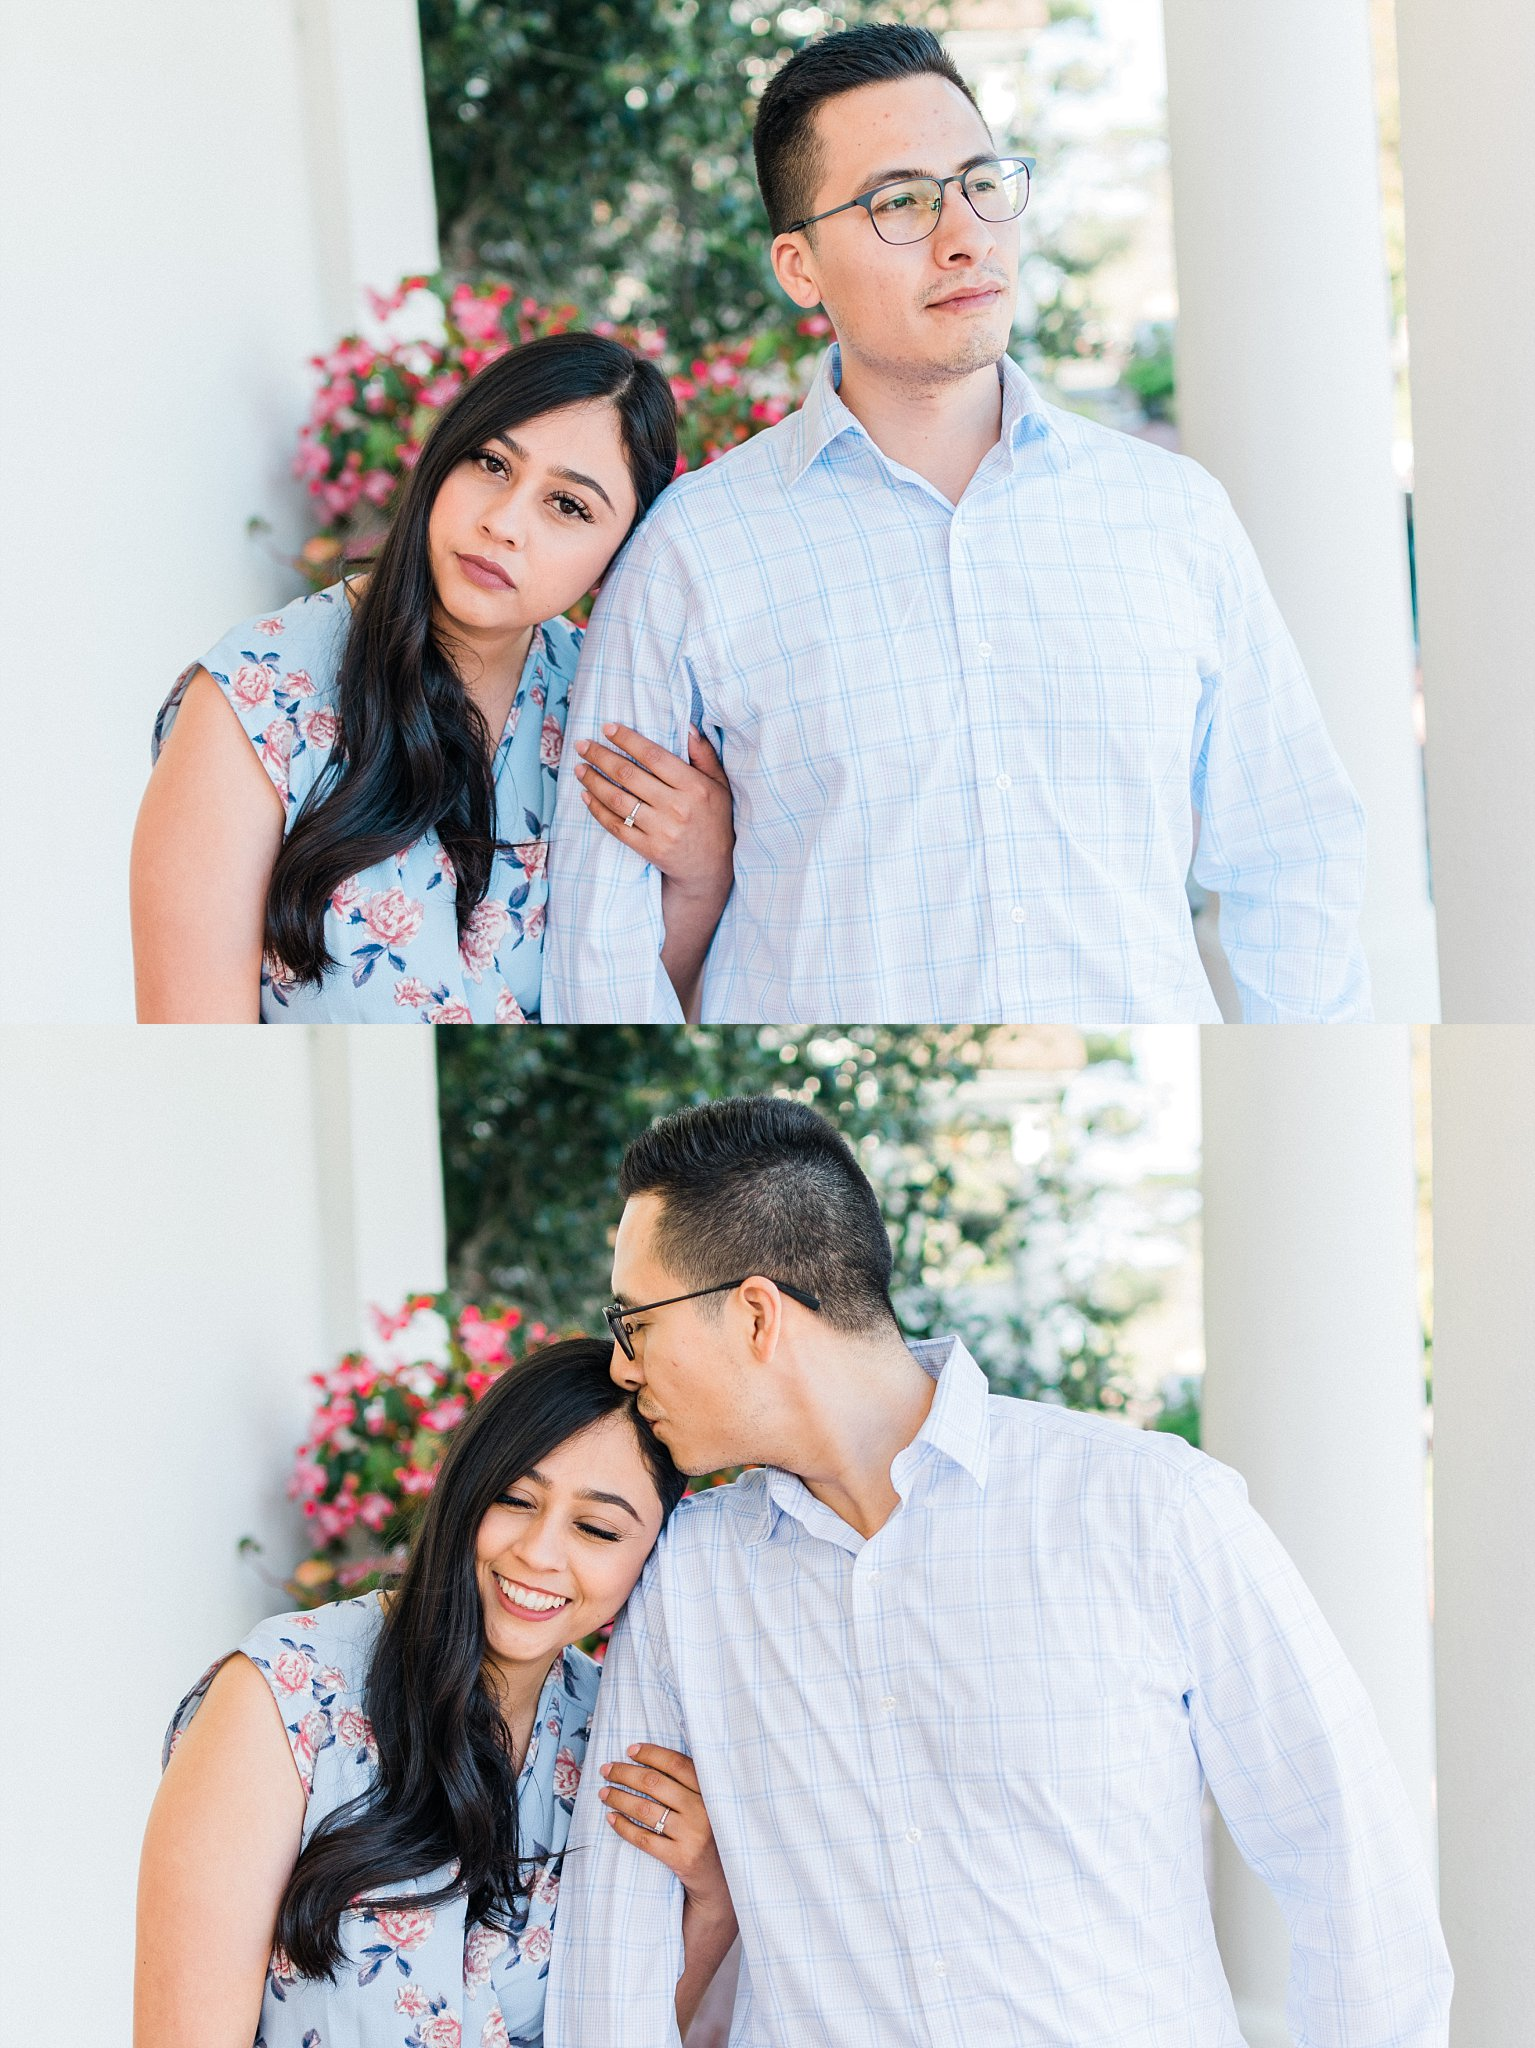 monterey-engagement-photographer-city-hall-drew-zavala-khrystal-chris_0057.jpg